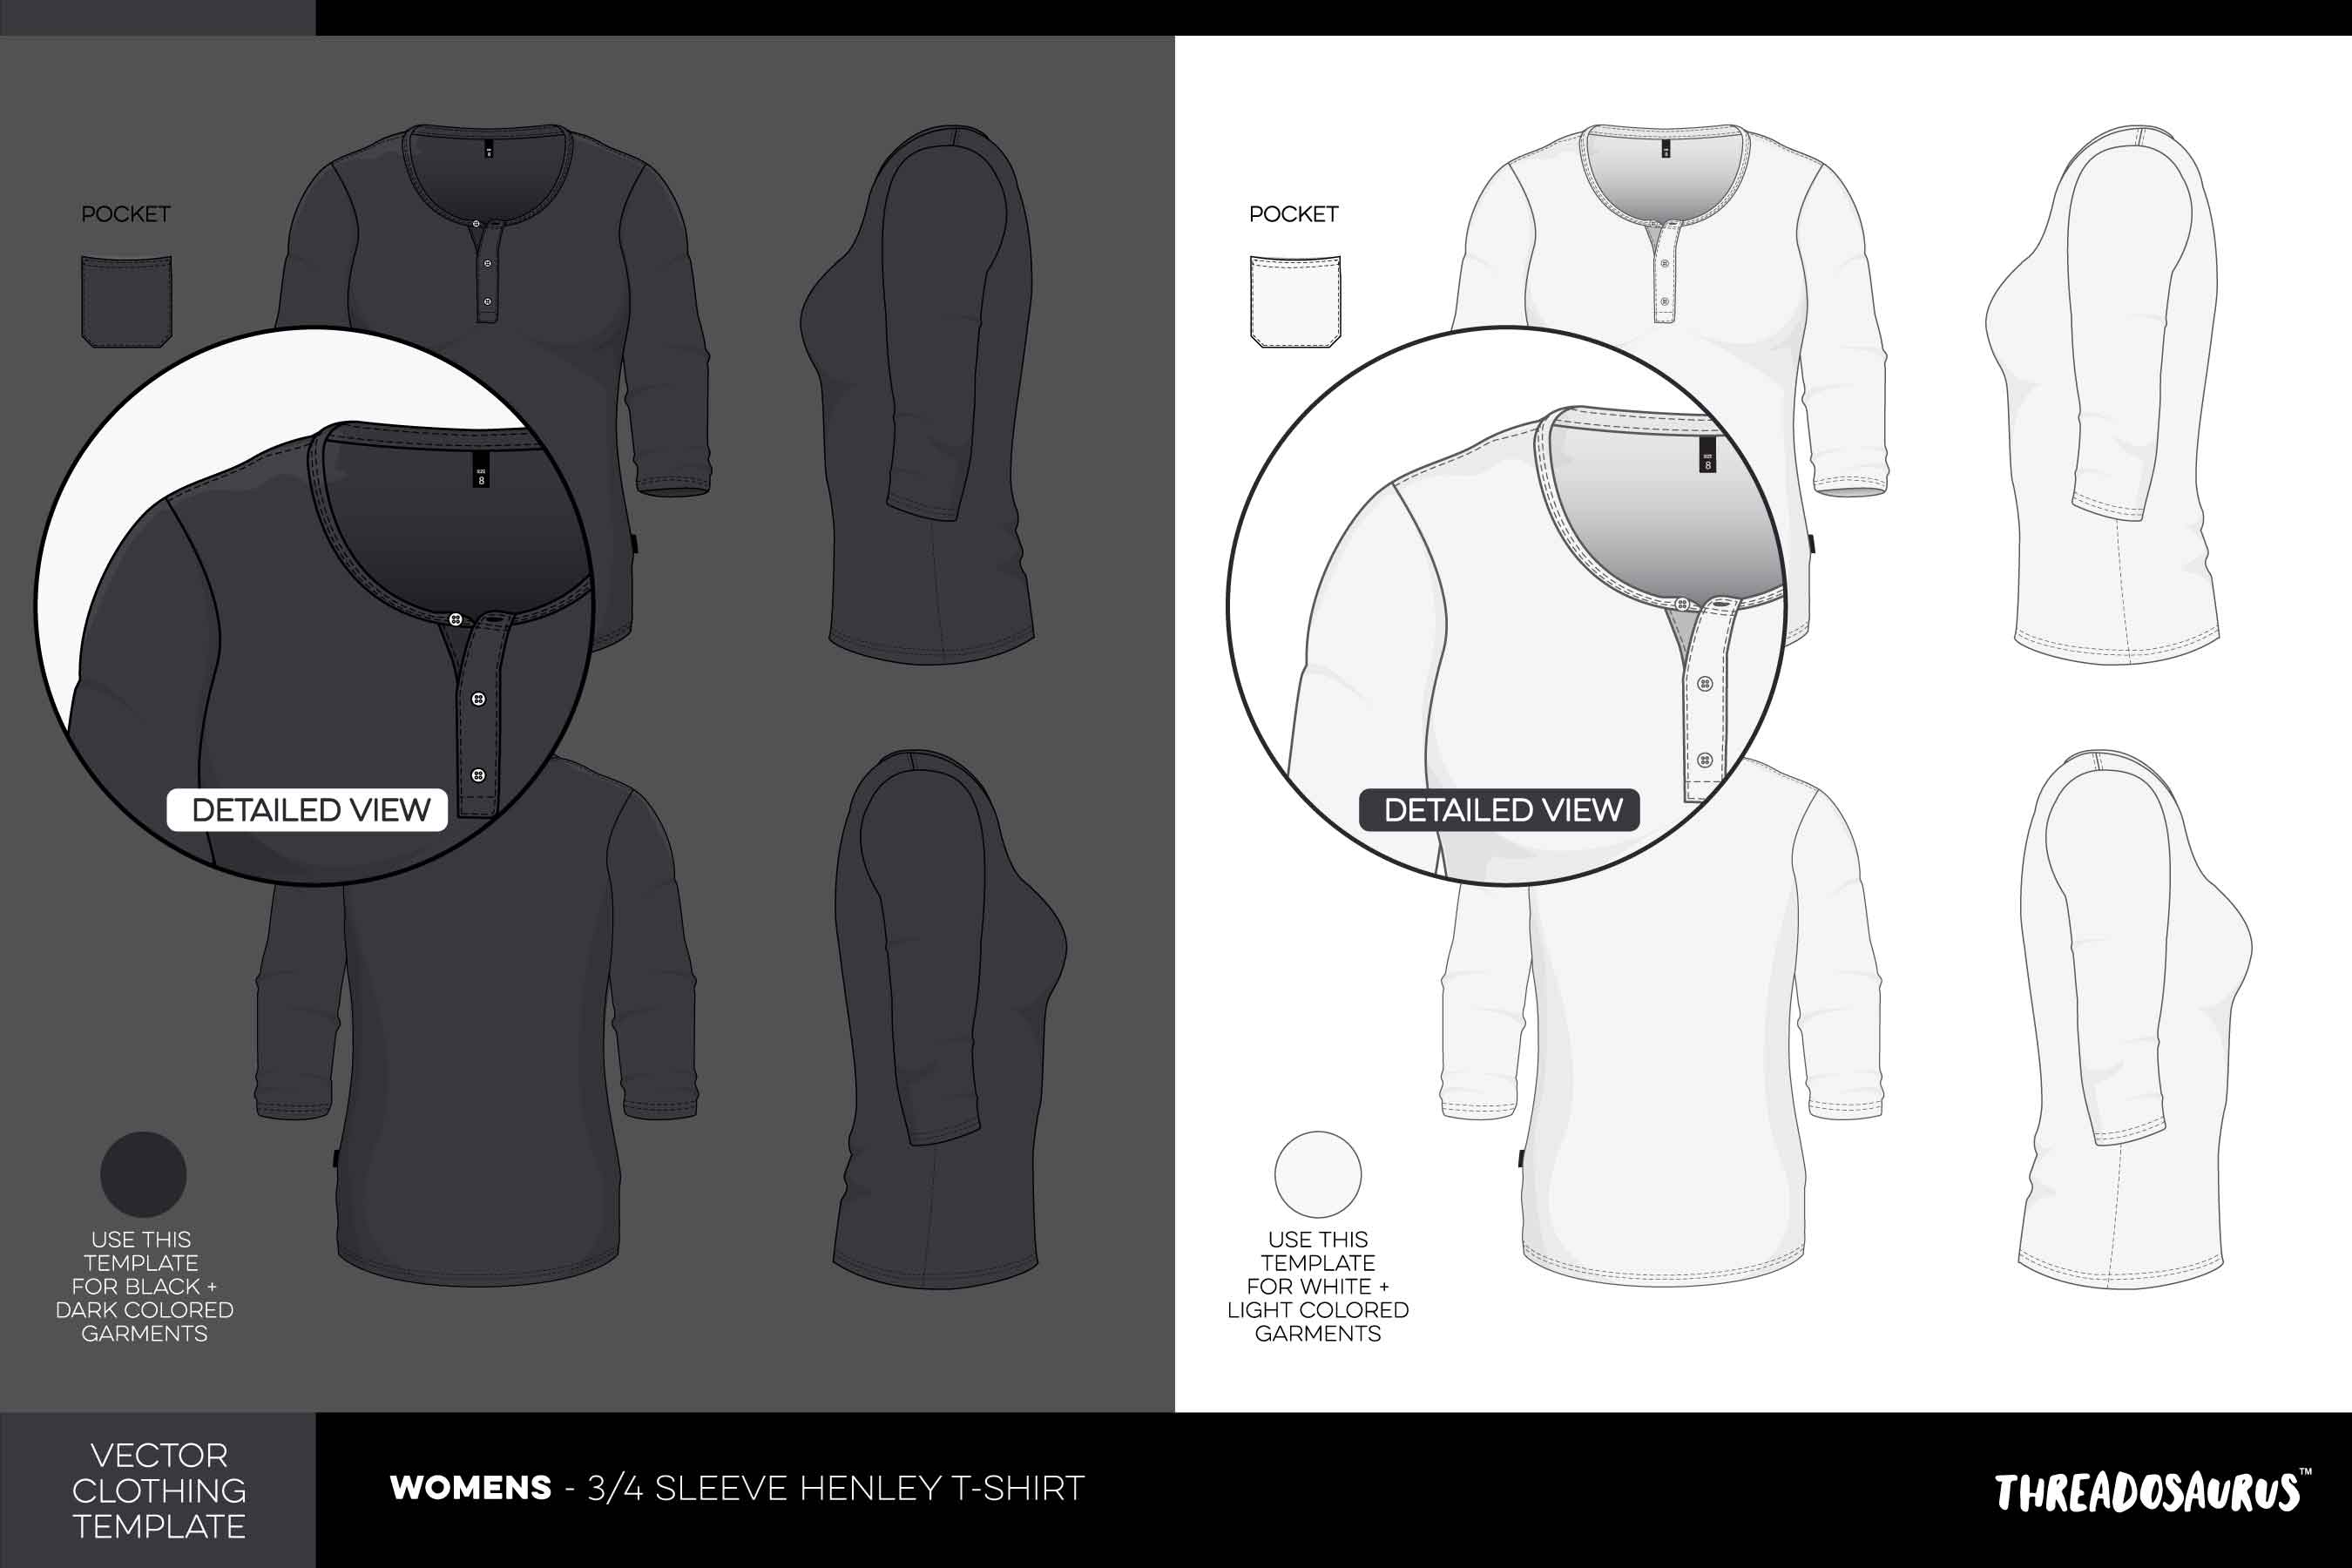 womens 3/4 sleeve henley t-shirt template vector pack